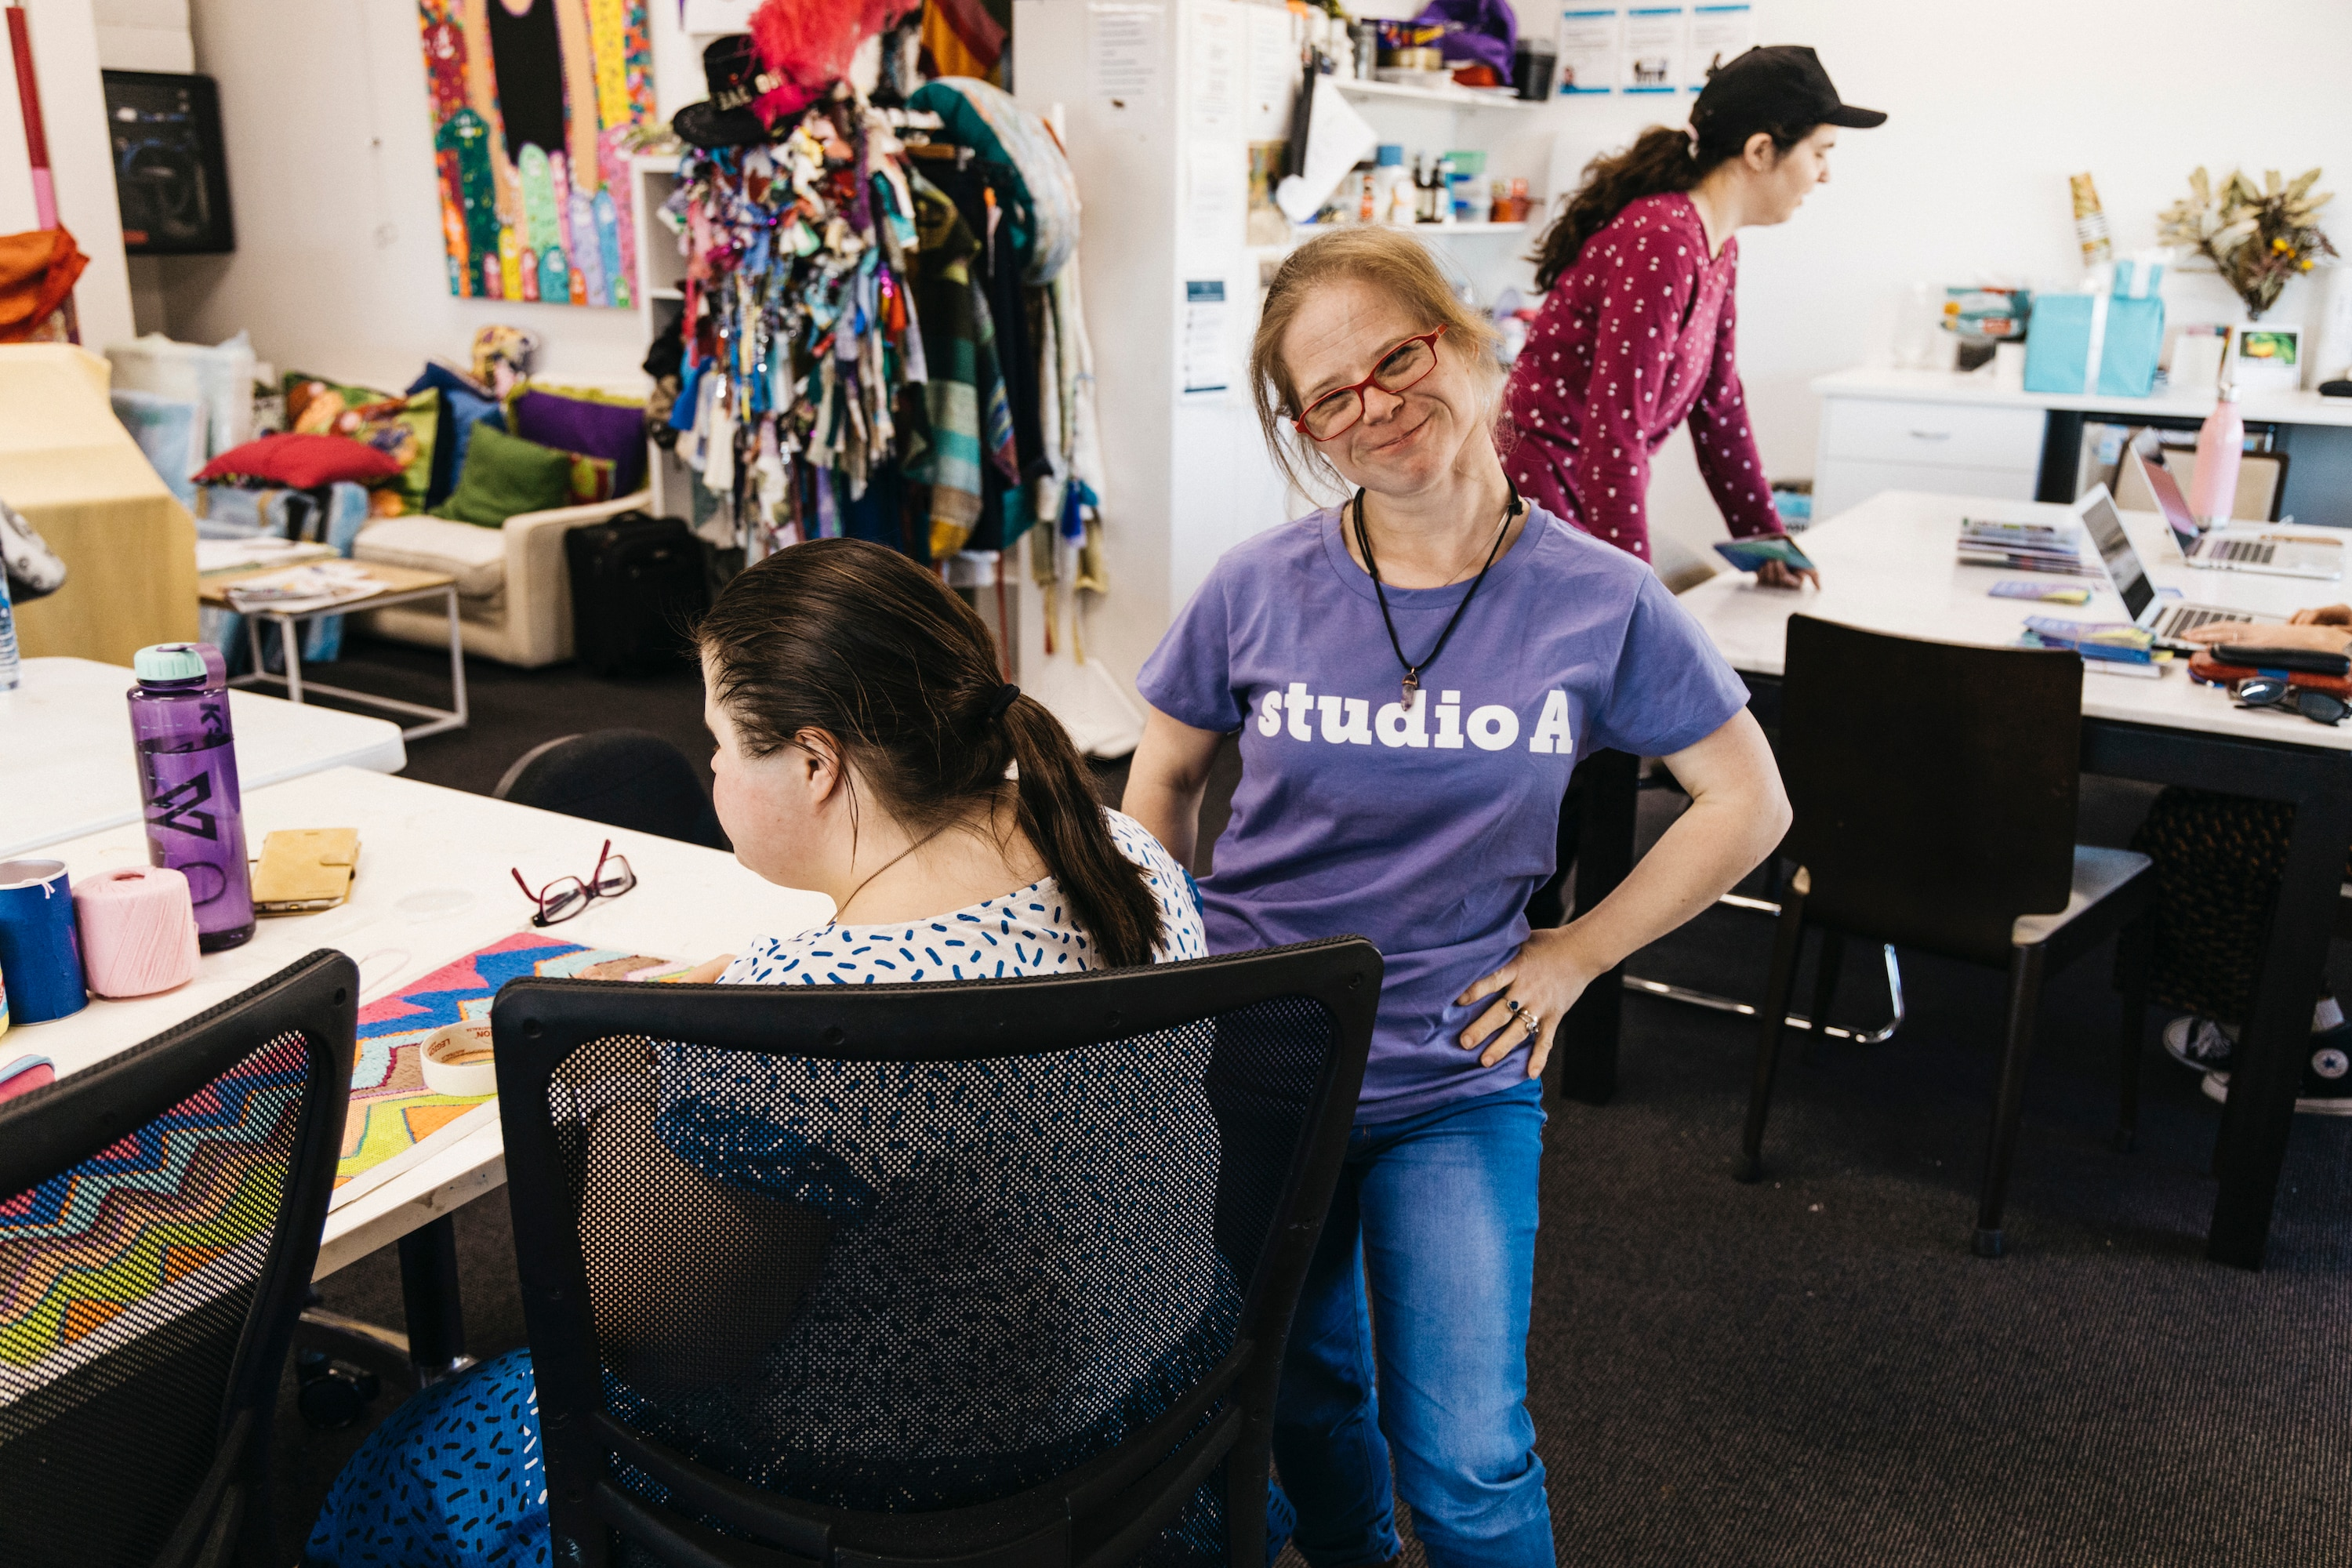 Studio A is a supported studio in Sydney for artists with intellectual disability.